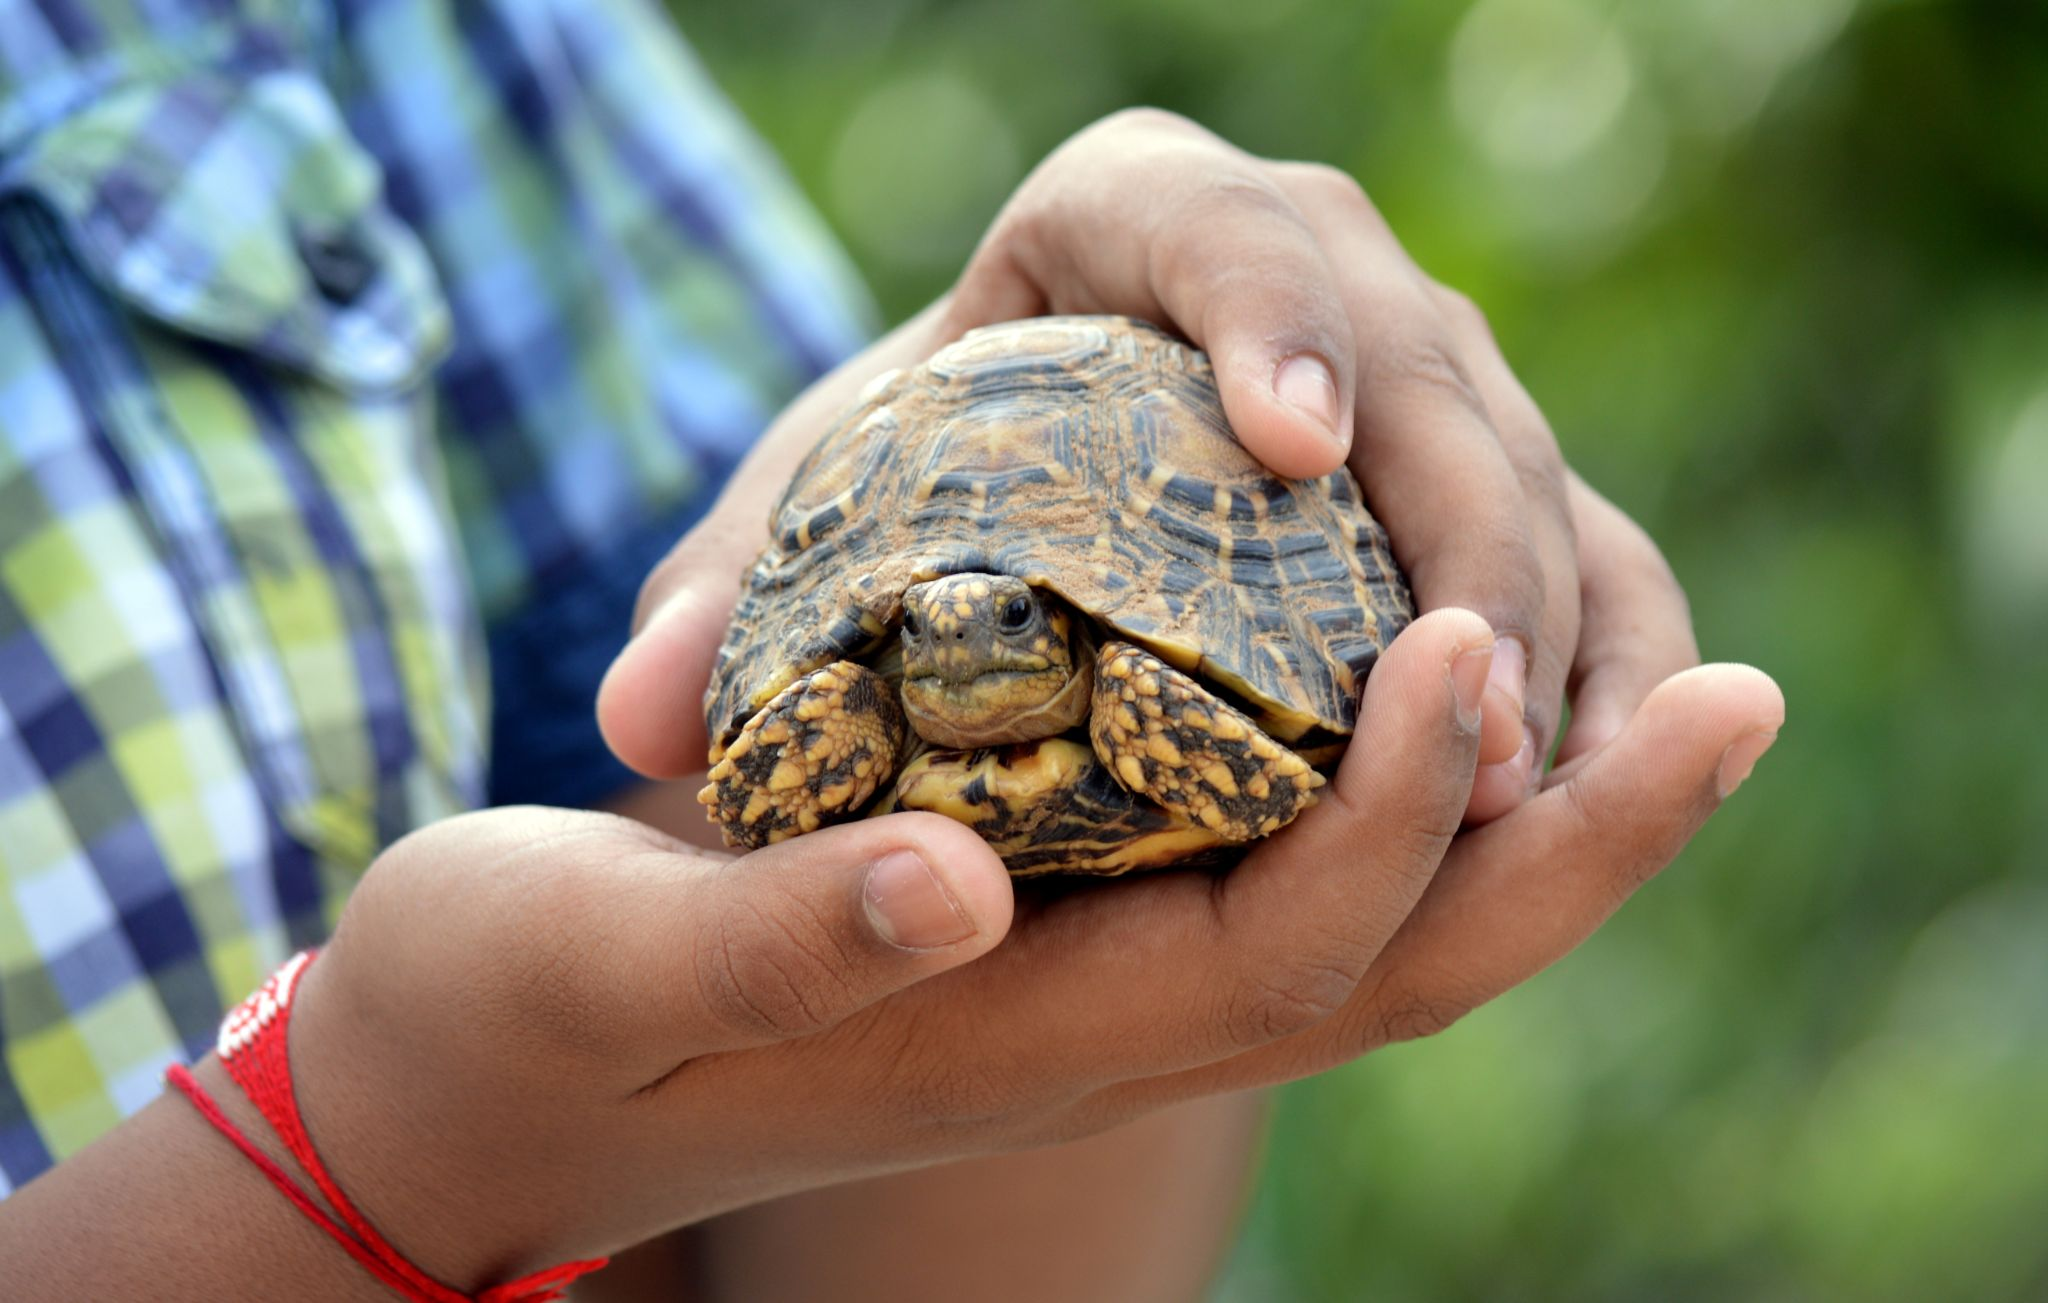 Safe in Hands - Star Tortoise by tejas.patel.9235199